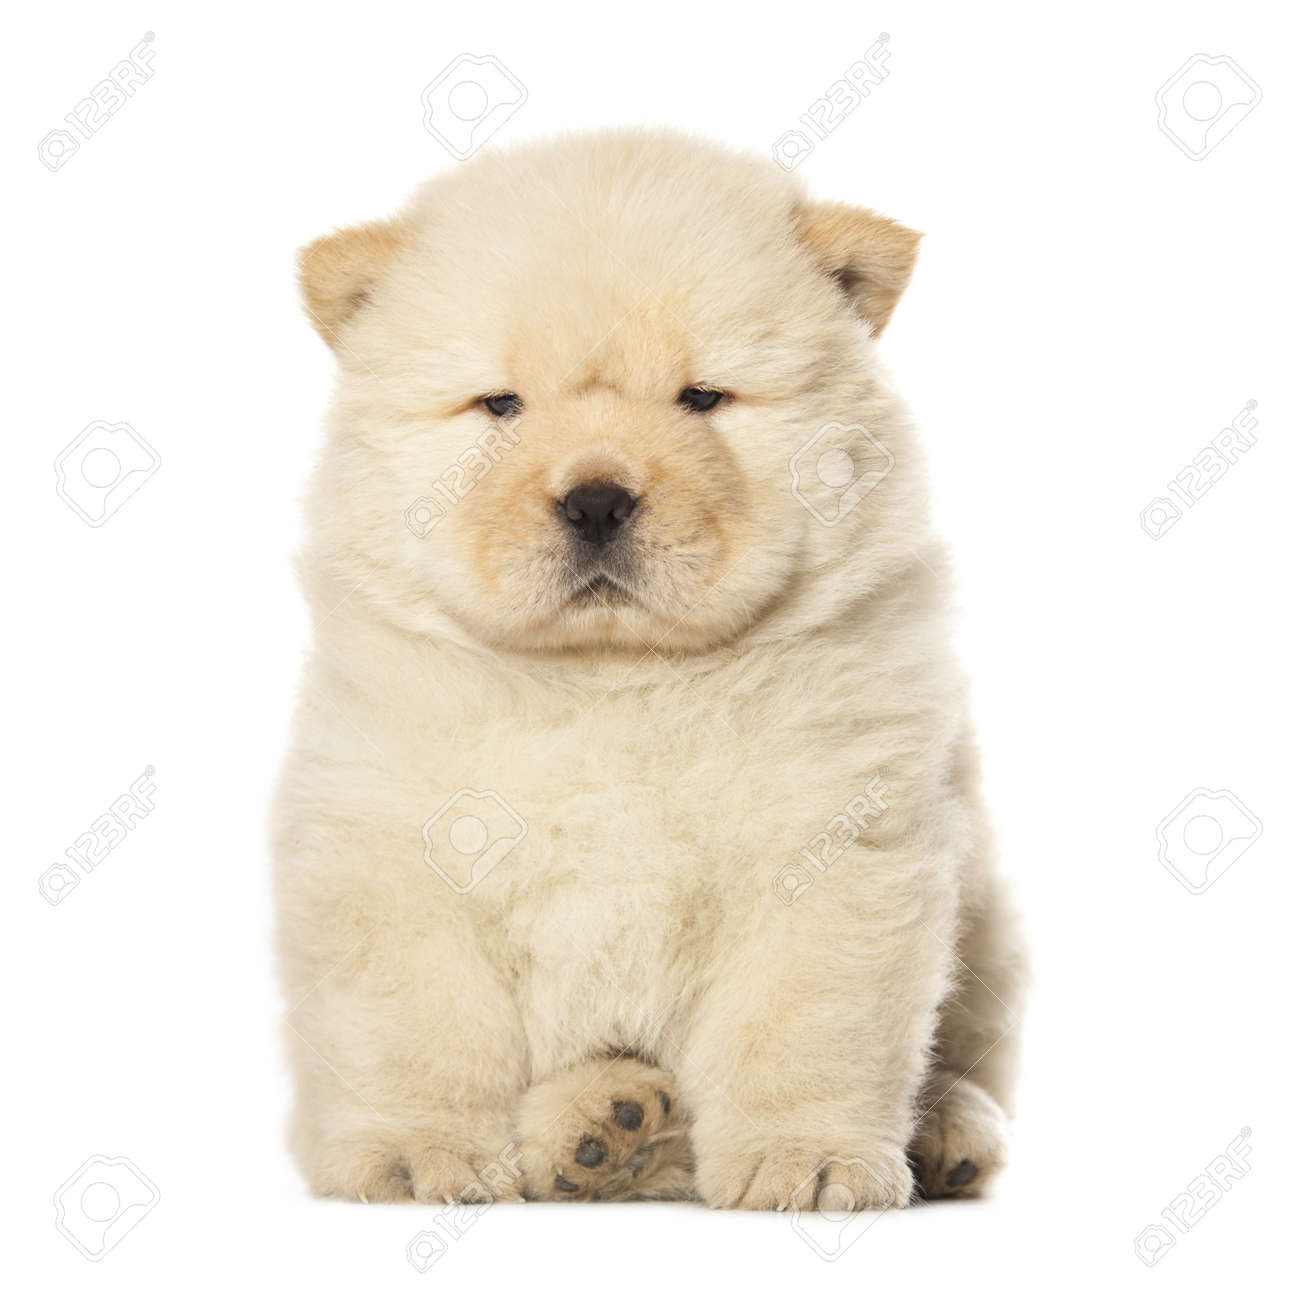 Fluffy Chow Chow Puppy Isolated Over White Background Stock Photo